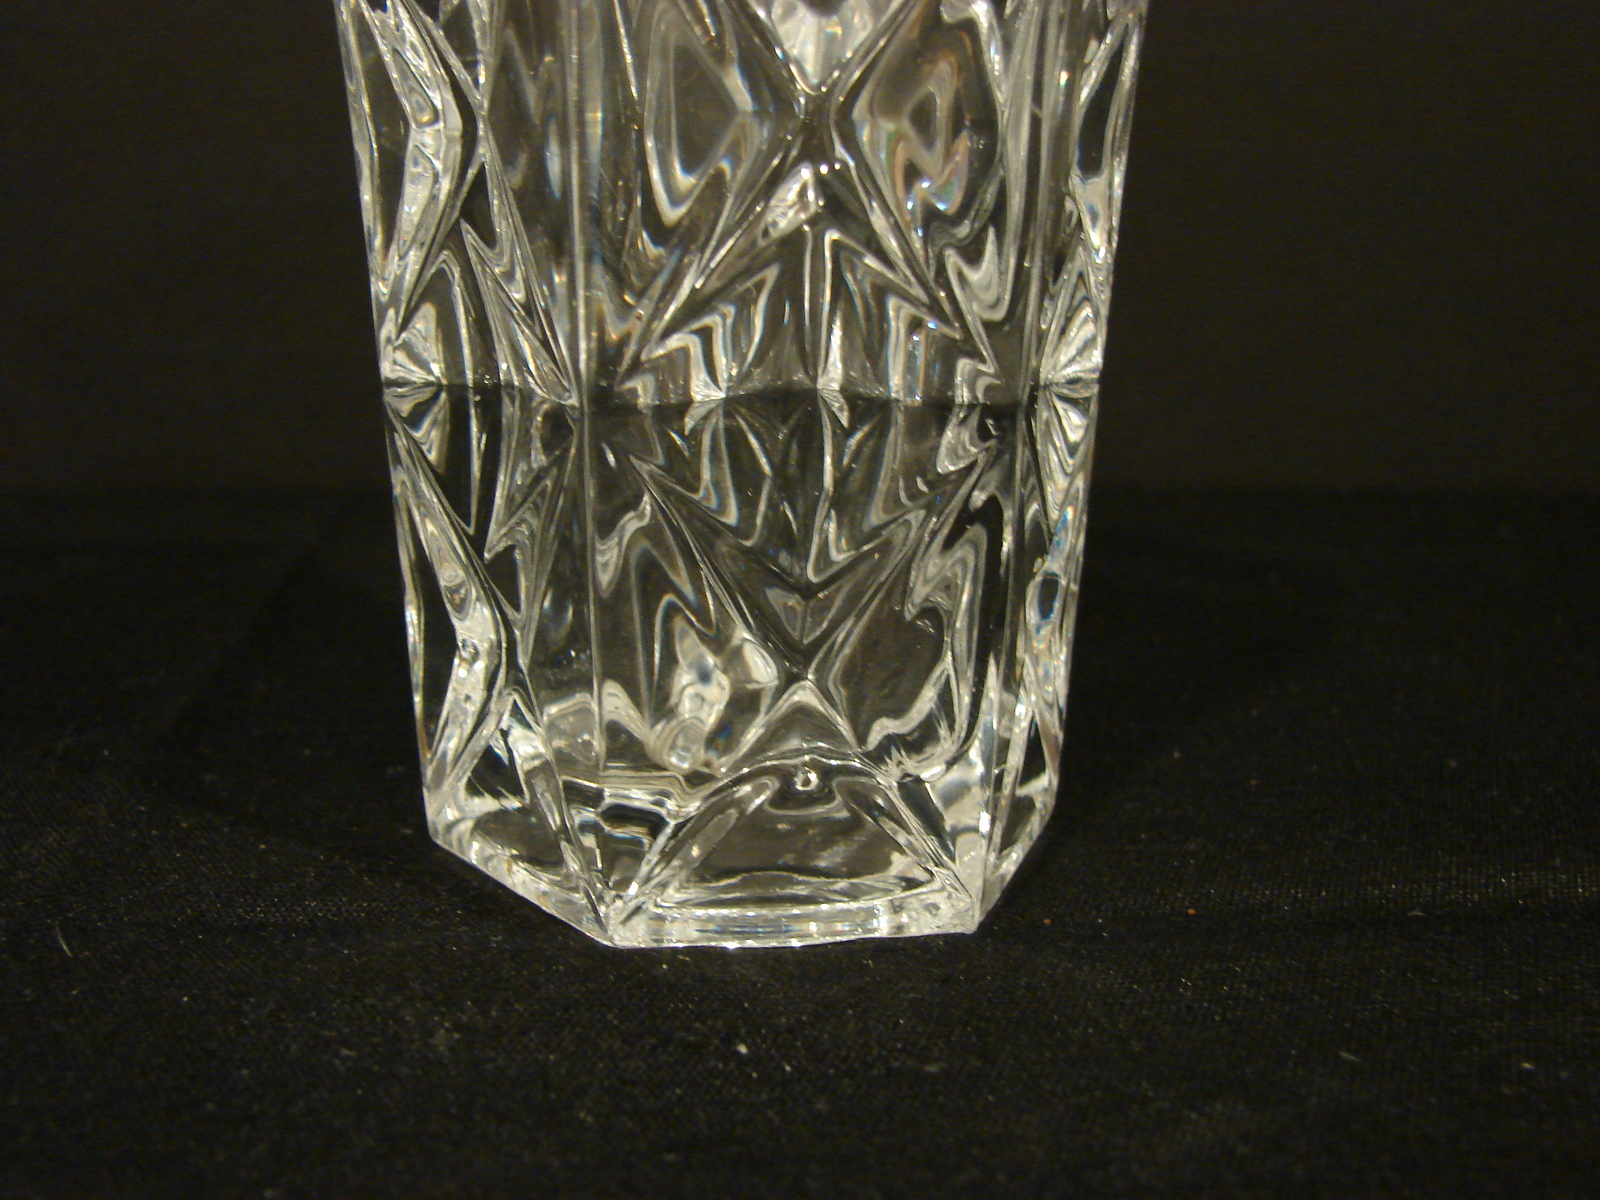 Two Matching 5 Inch Crystal d' Arques-Durand Sully Pattern Bud Vases image 4